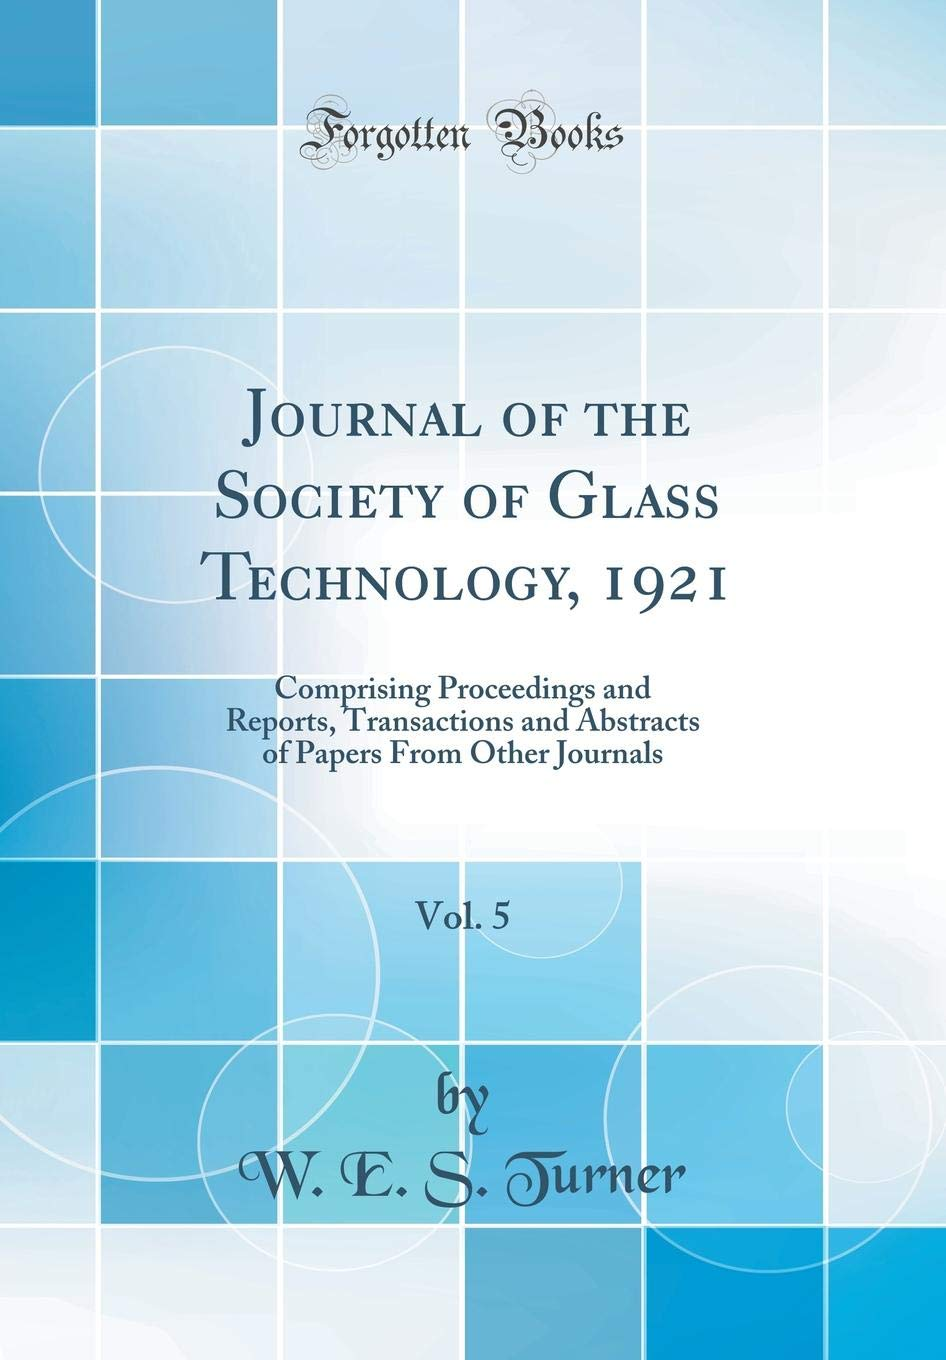 Download Journal of the Society of Glass Technology, 1921, Vol. 5: Comprising Proceedings and Reports, Transactions and Abstracts of Papers From Other Journals (Classic Reprint) ebook